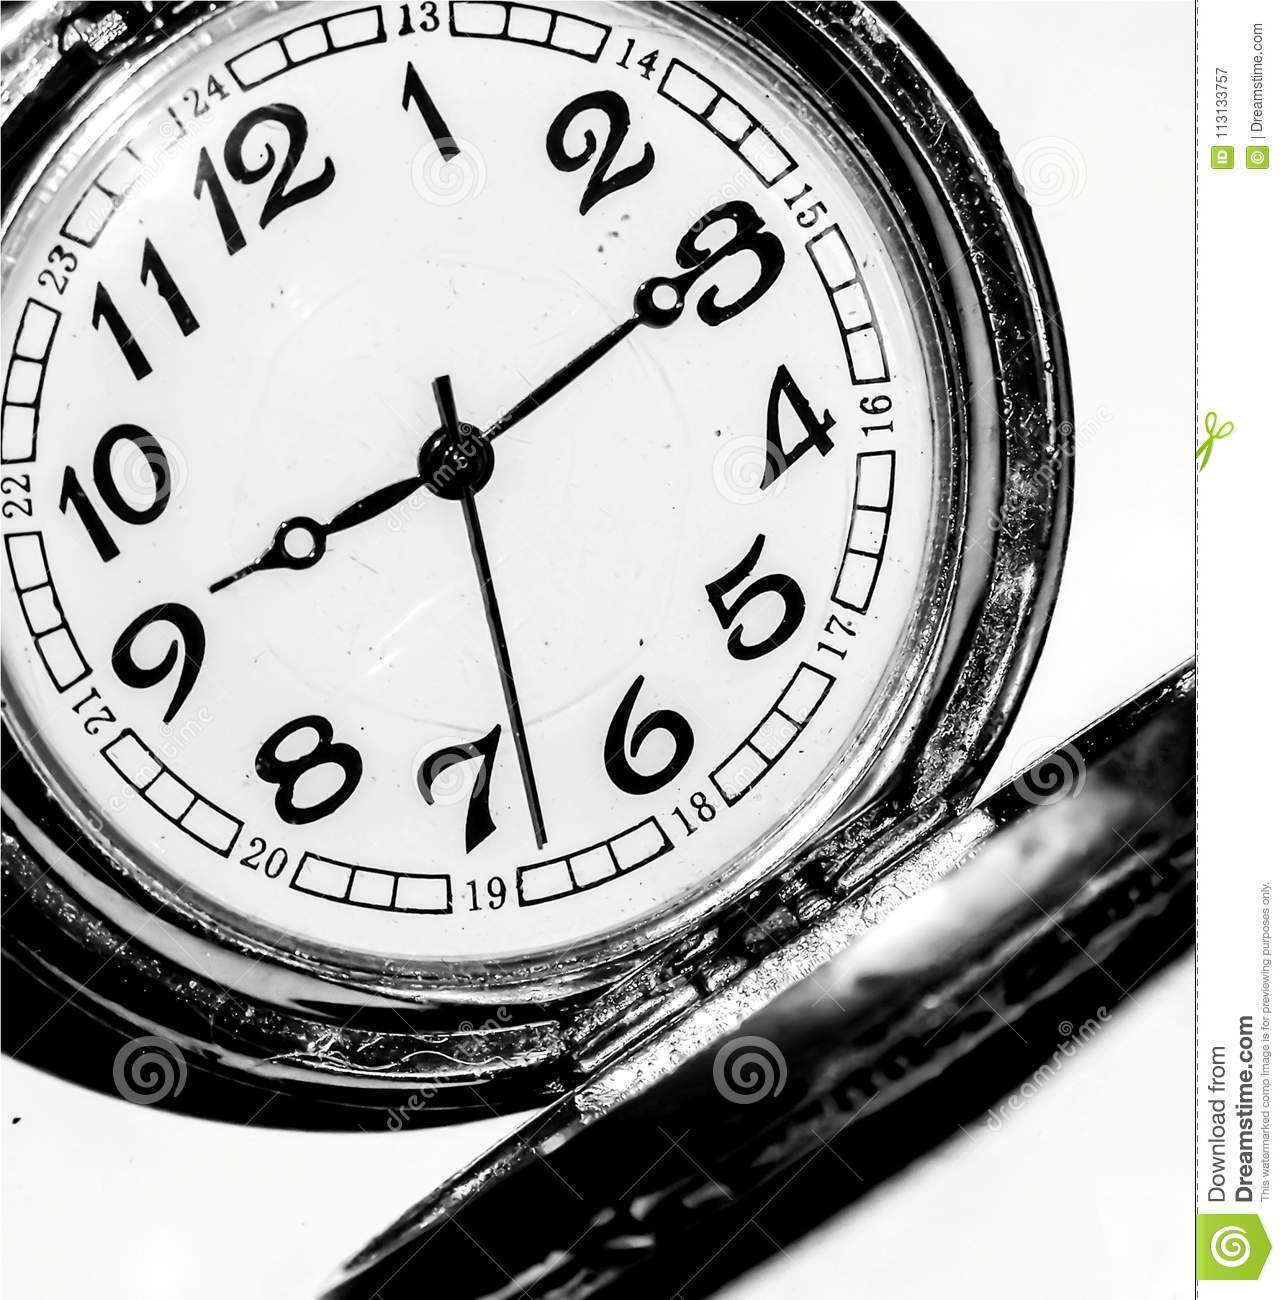 Beautiful Wallpaper Of Closeup Pocket Watch In Black And White Concept Time Flowing Object Retro Detail Little Clock